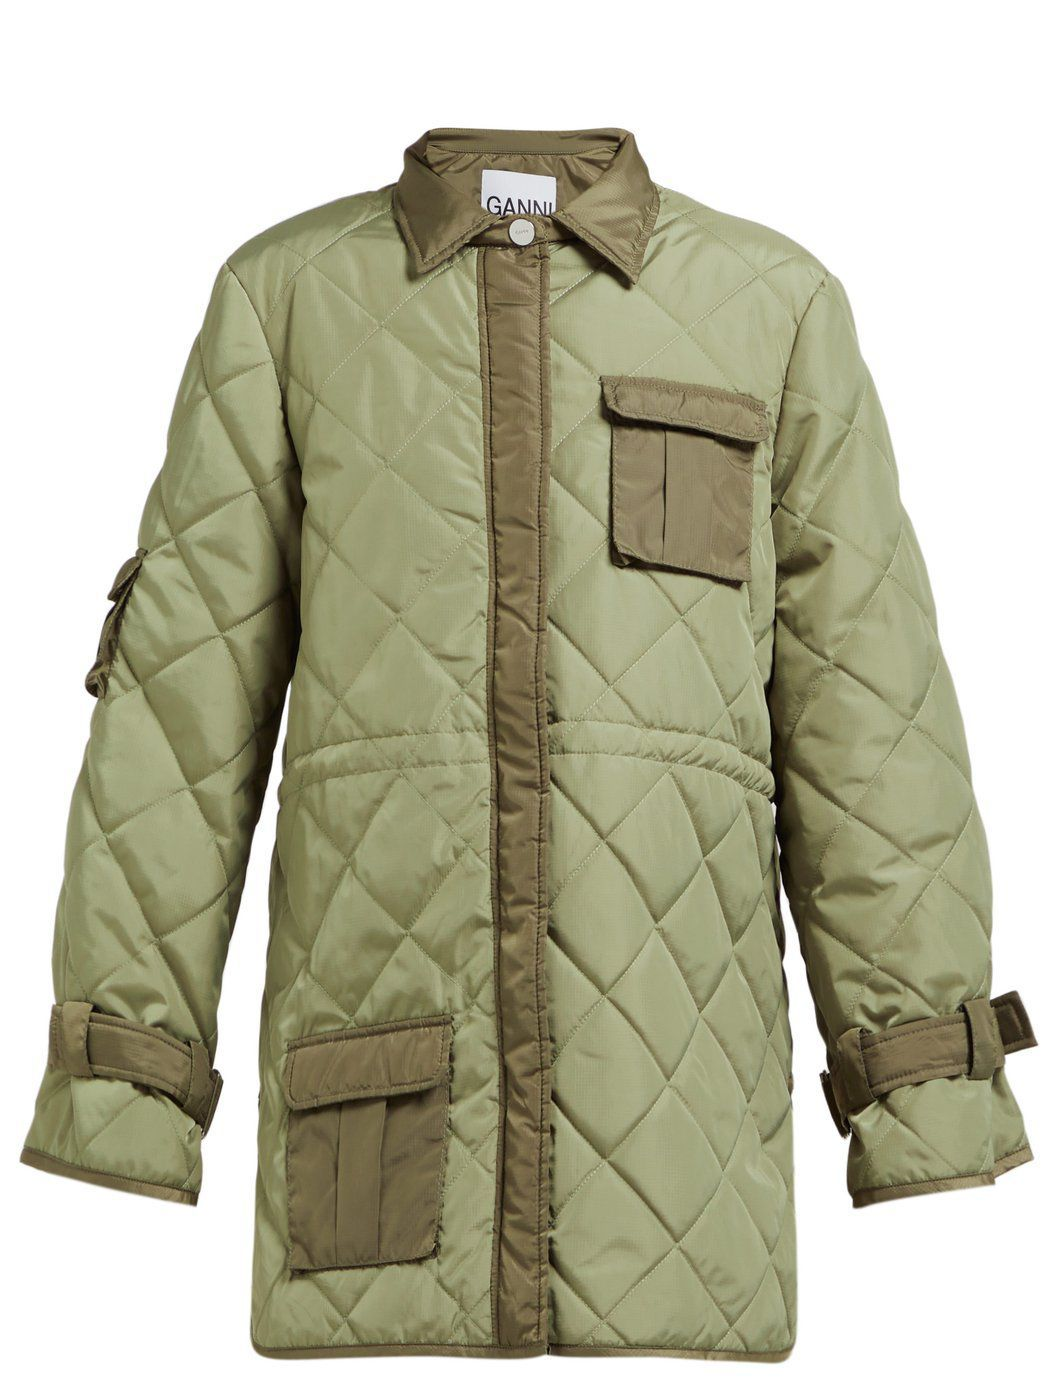 Ripstop Quilt Jacket Ganni shopbop.com $475.00 SHOP NOW Level up from that classic Barbour jacket.